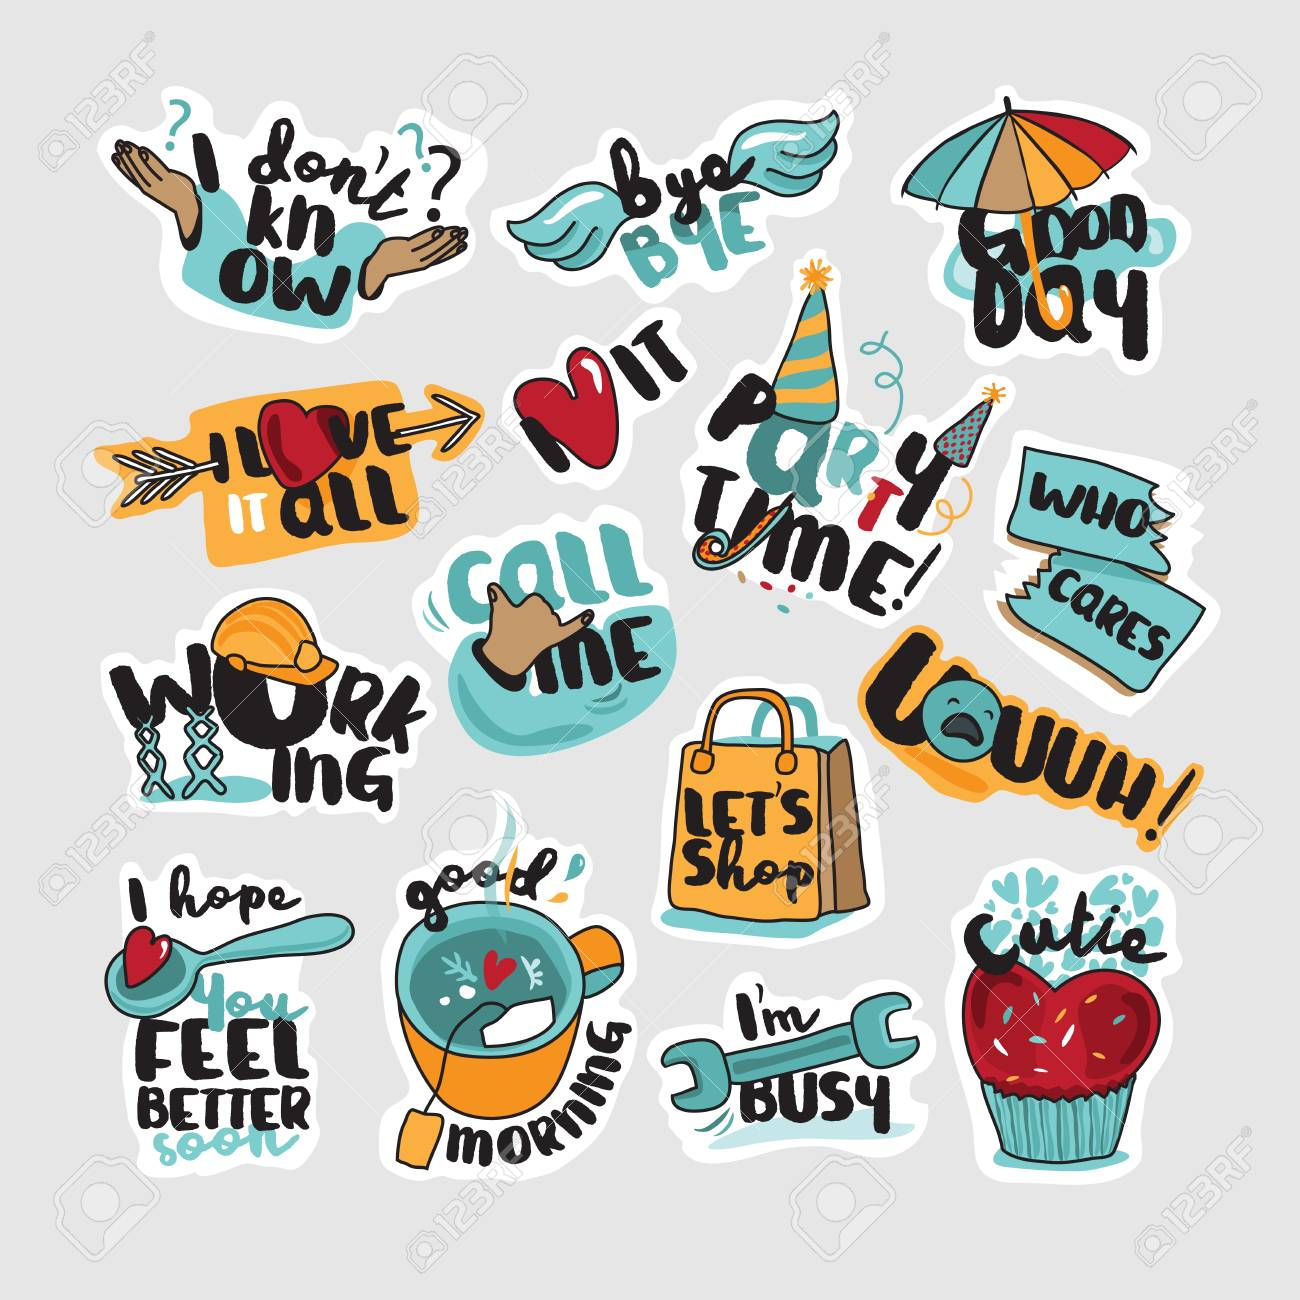 Collection of stickers and signs for social network web design mobile messages social